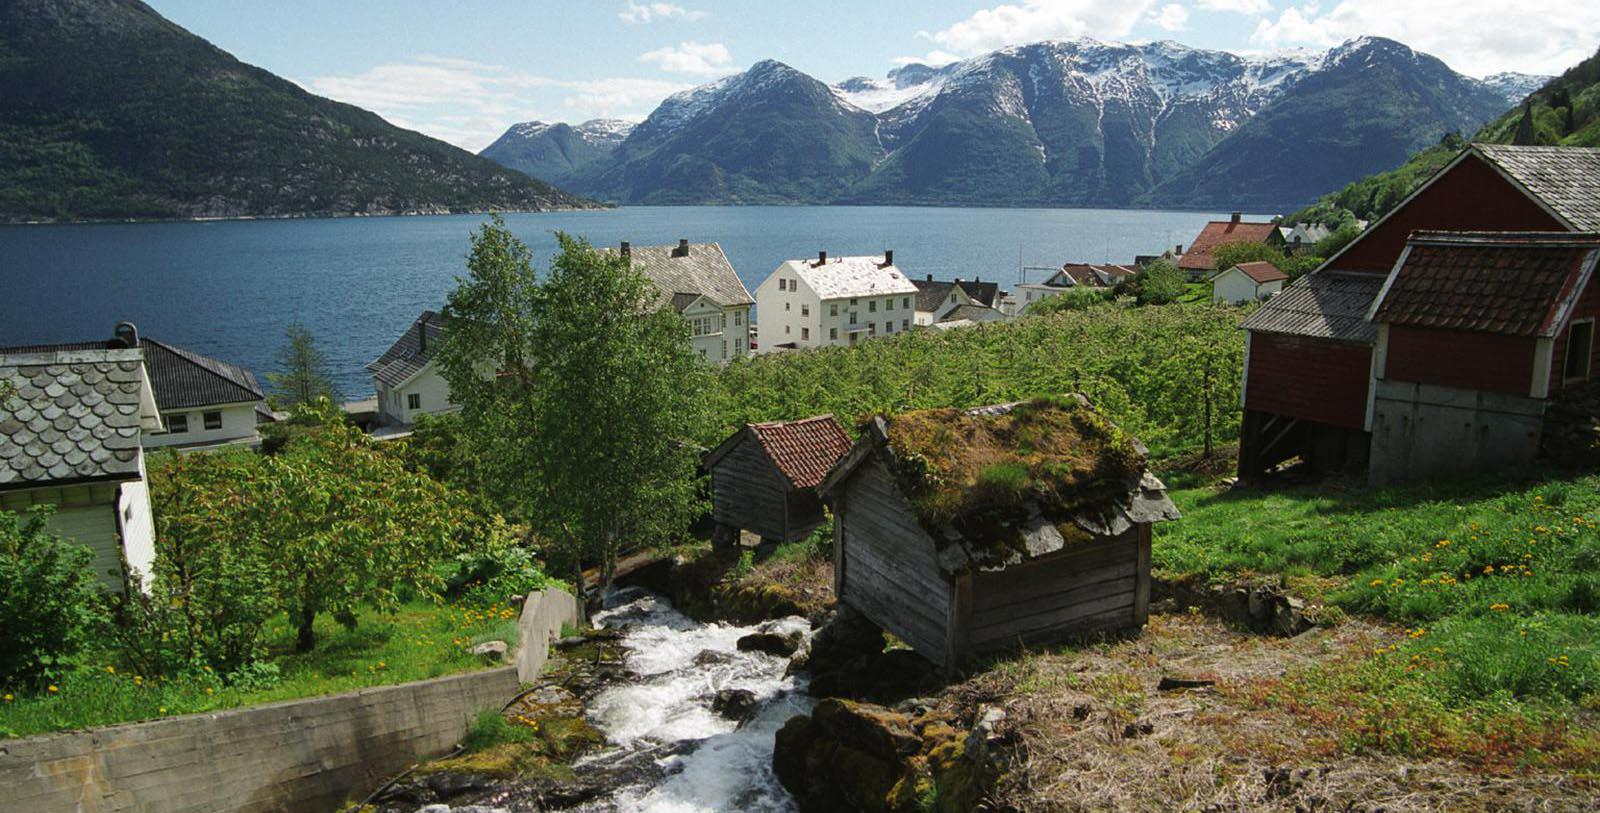 Image of Hotel Exterior and Fjord at Utne Hotel, 1722, Member of Historic Hotels Worldwide, in Utne, Norway, Explore